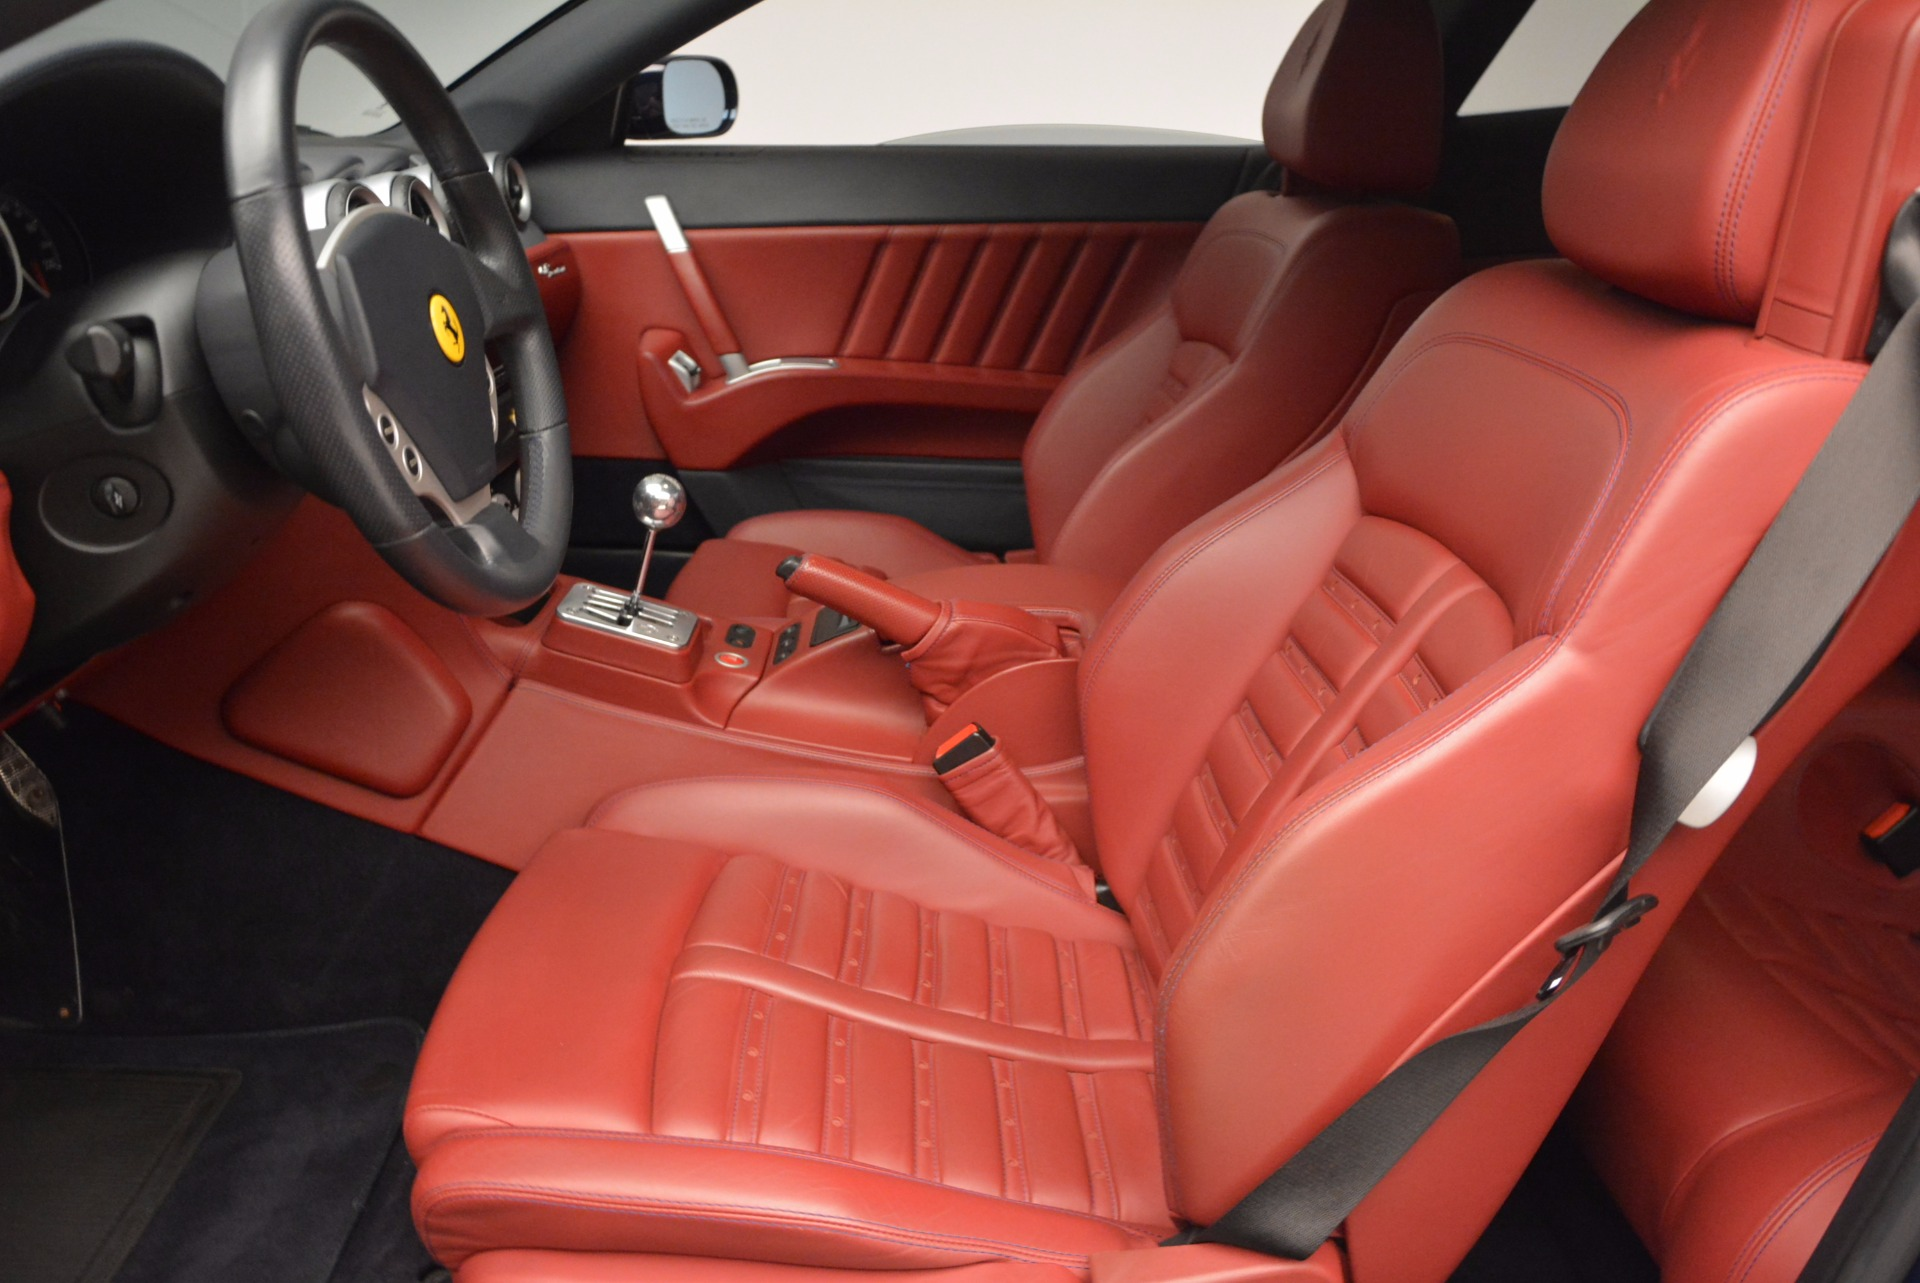 Used 2005 Ferrari 612 Scaglietti 6-Speed Manual For Sale In Greenwich, CT 854_p14